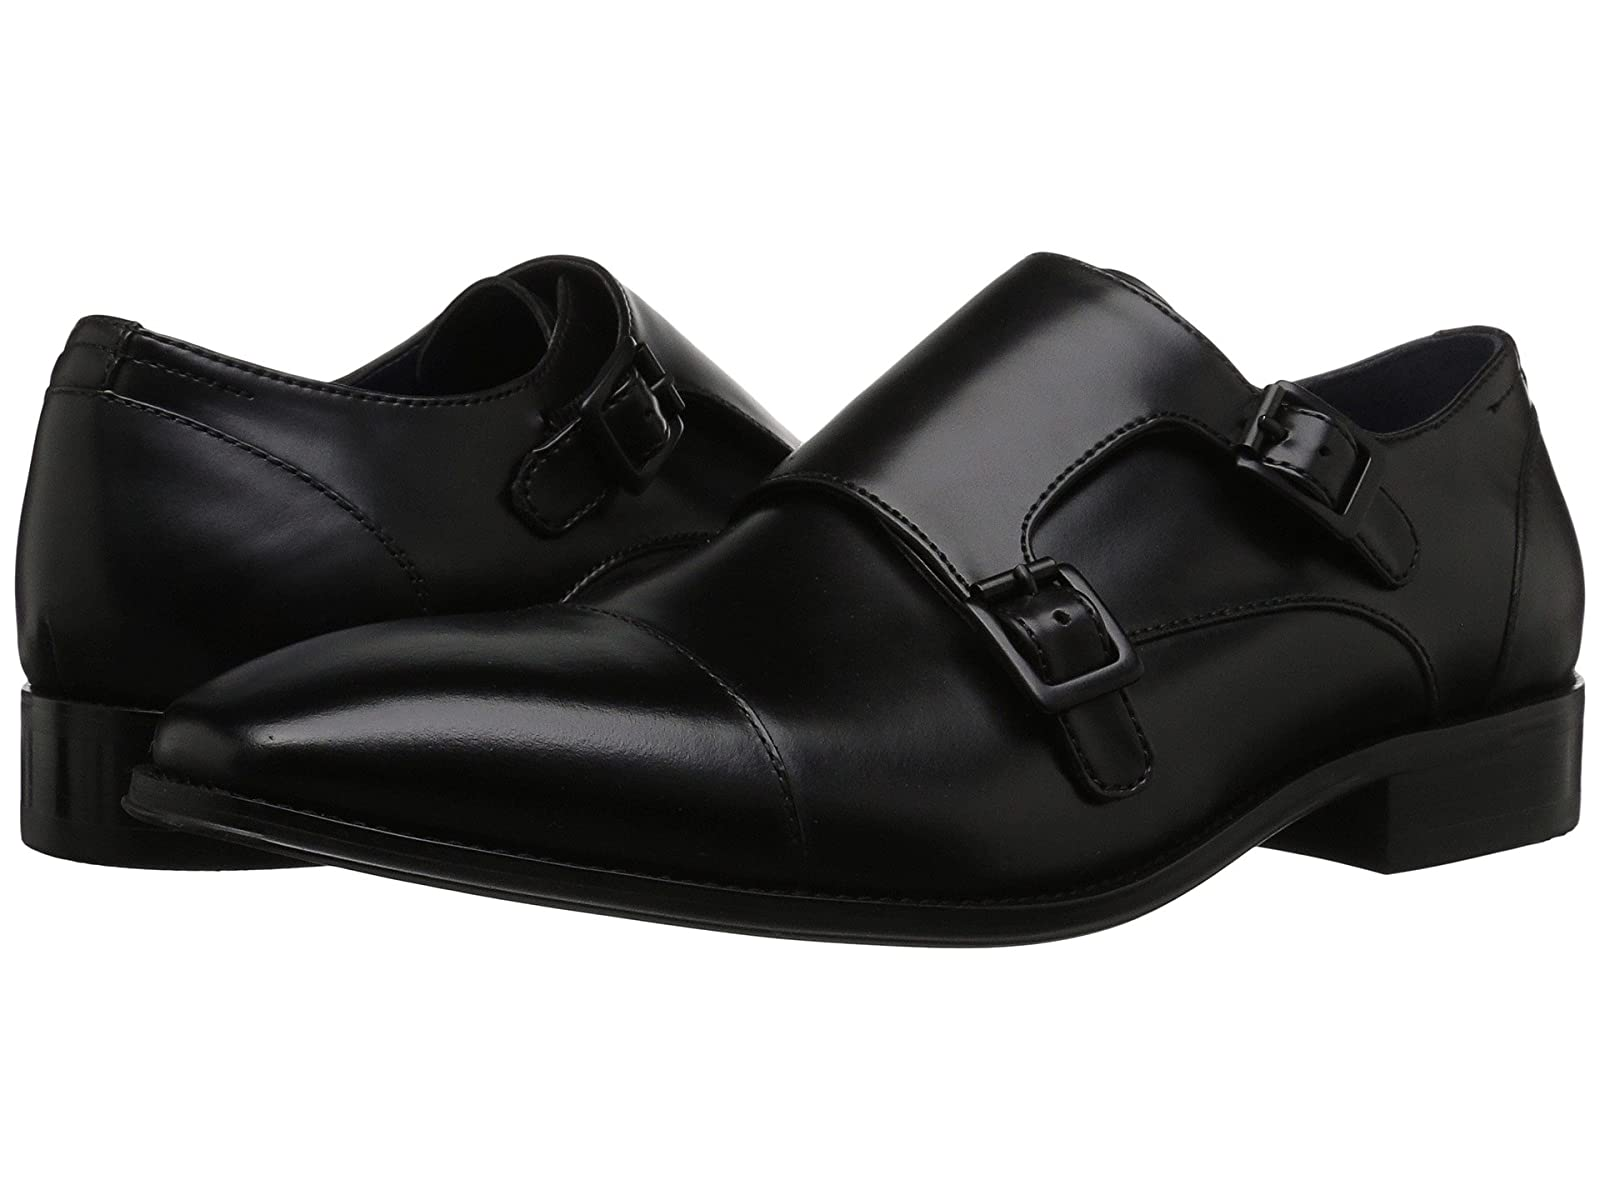 Kenneth Cole Reaction Design 20604Atmospheric grades have affordable shoes